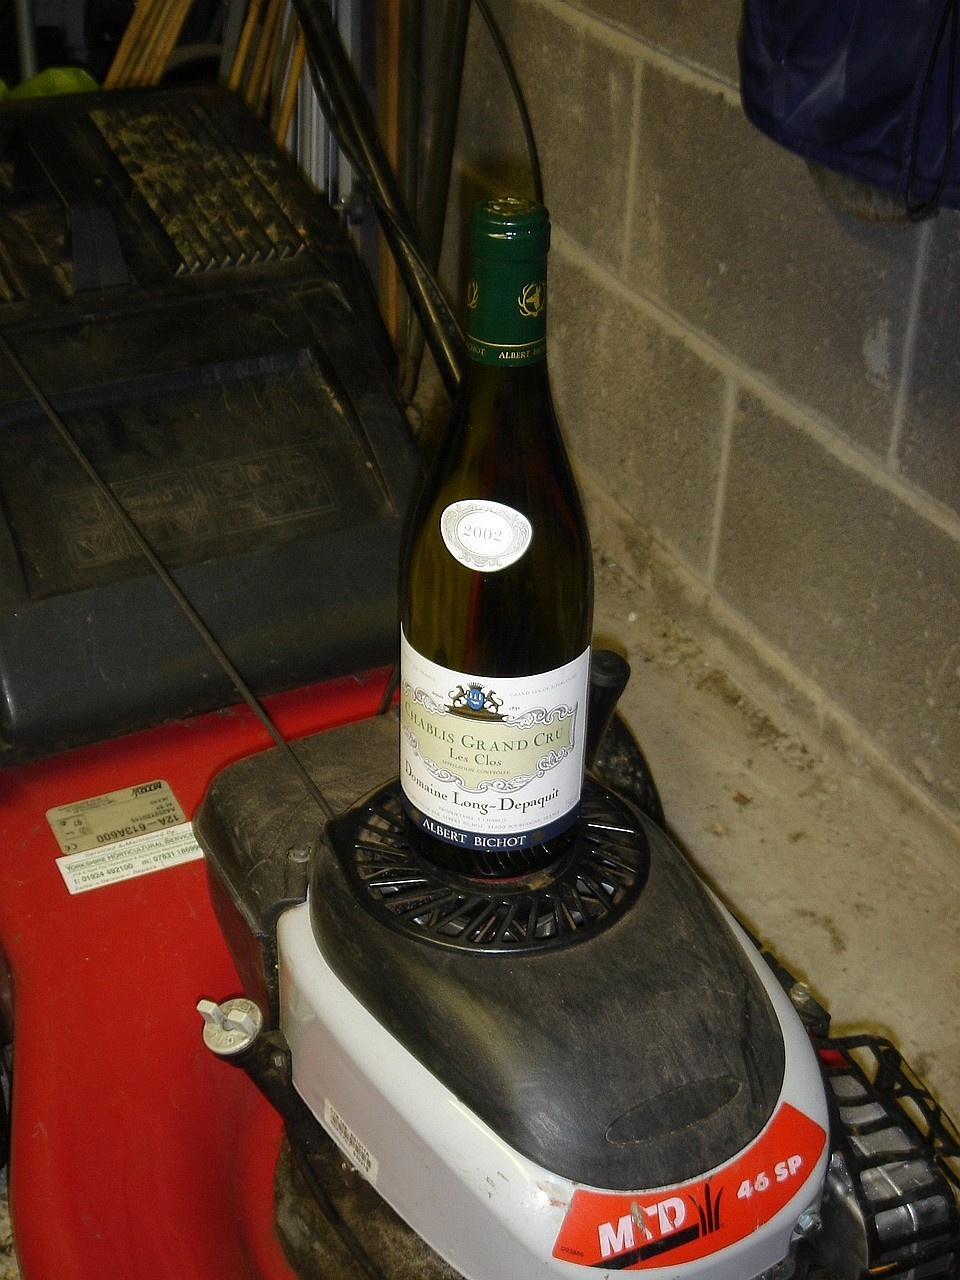 Don't try this at home - a Grand Cru Chablis balancing precariously on my lawn mower (for some reason)